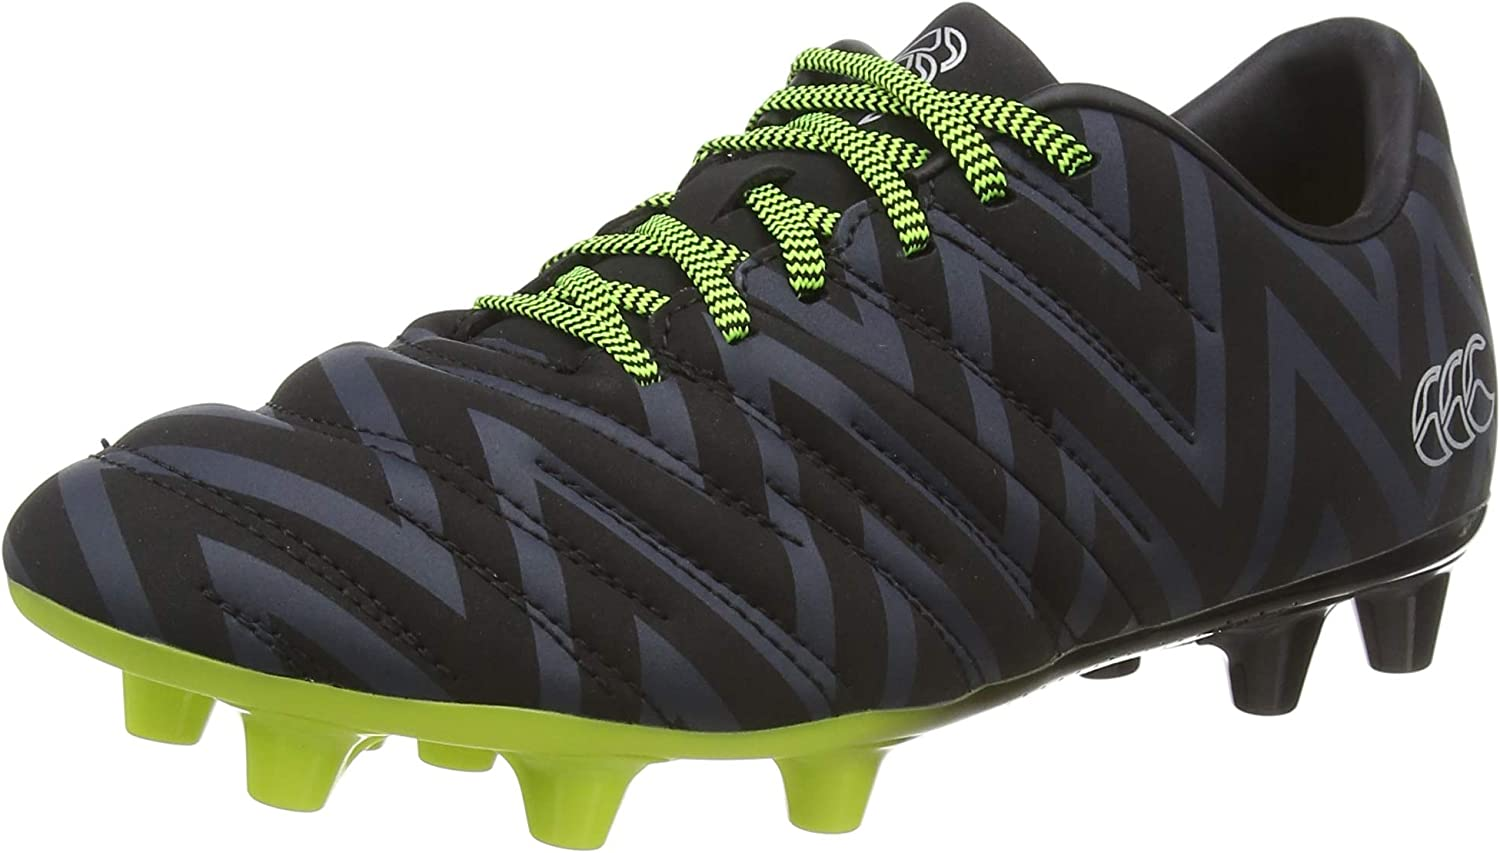 Chaussures de Rugby Mixte Enfant Canterbury of New Zealand Phoenix 2.0 Firm Ground